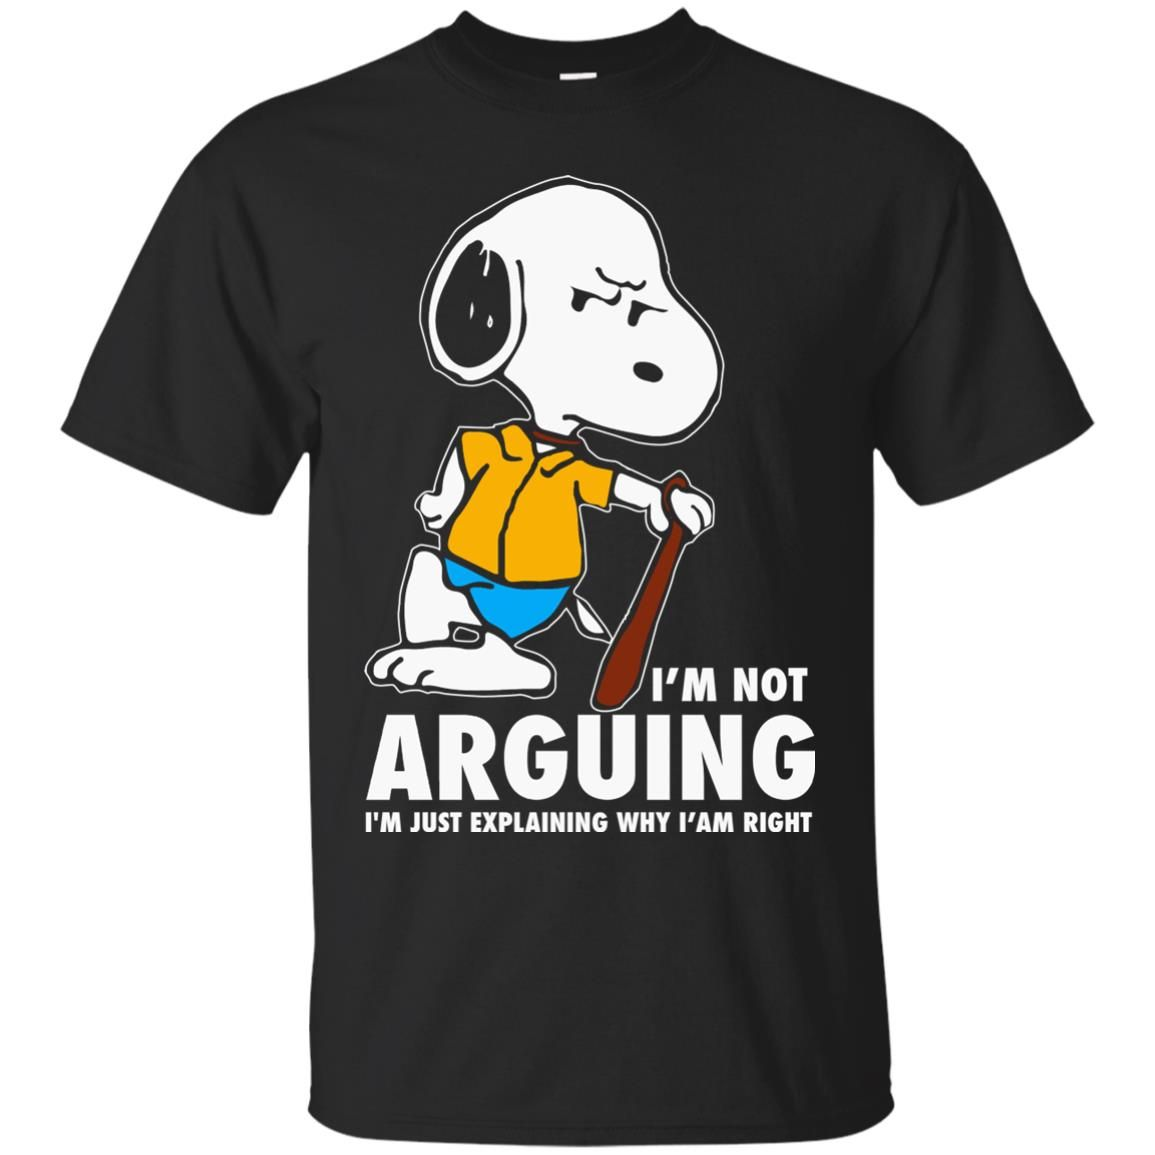 image 1388 - Snoopy: I'm not Arguing I'm just explaining why I'm right shirt, hoodie